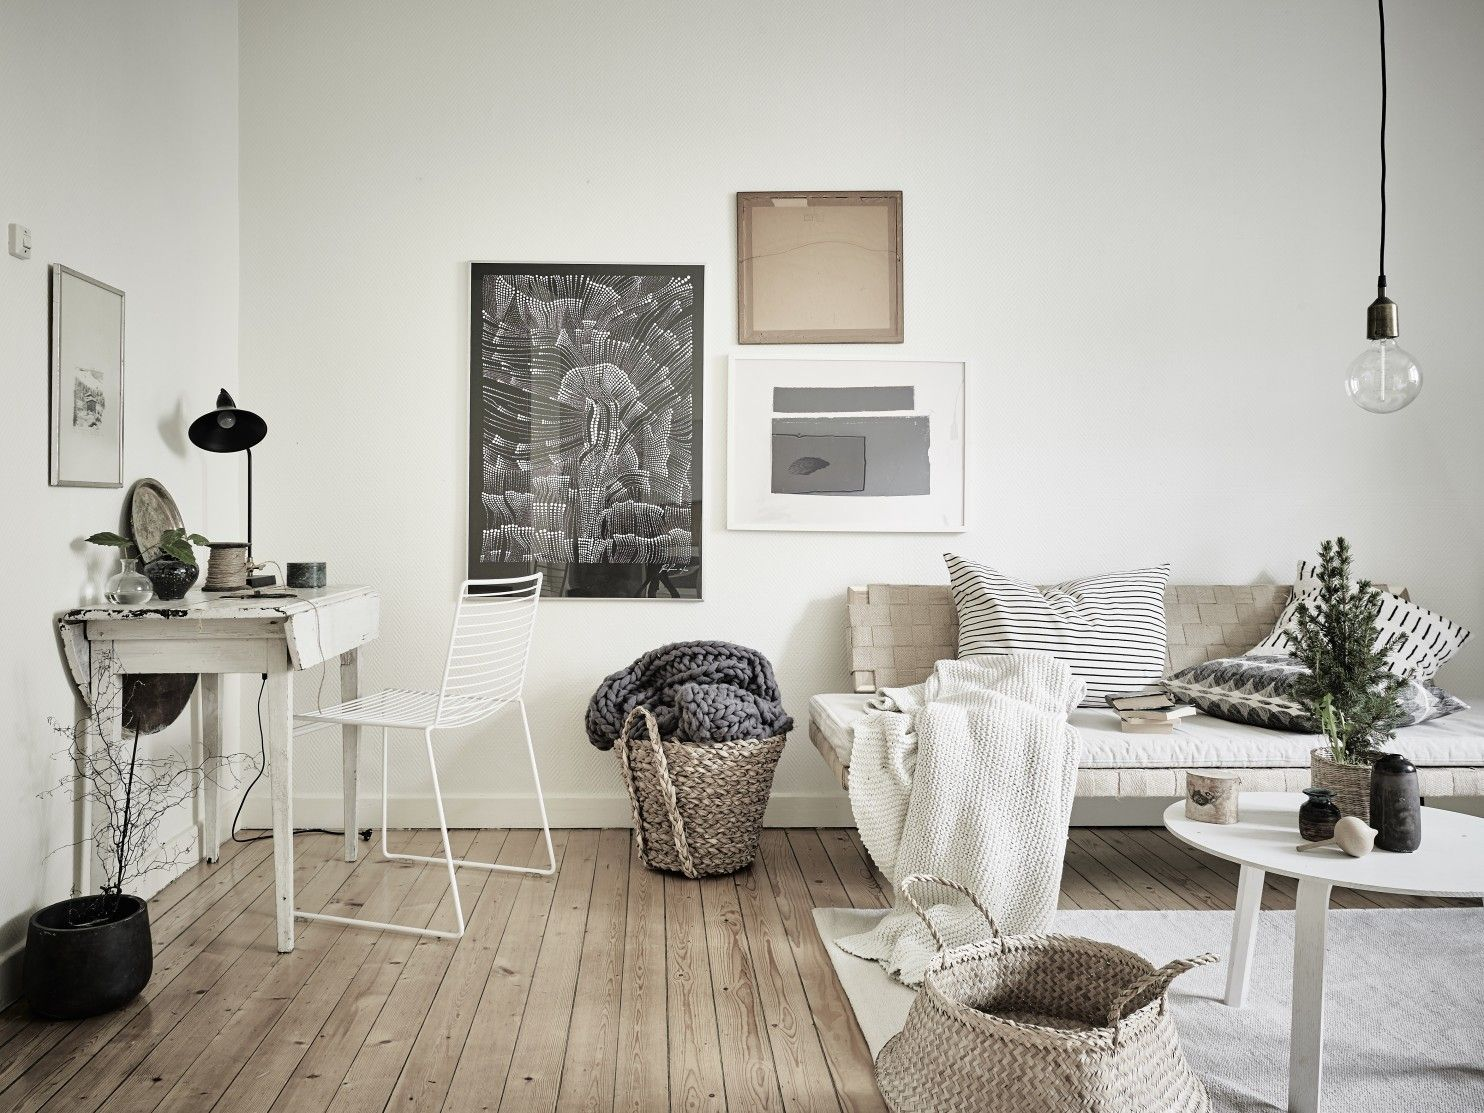 Scandinavian design is more than just Ikea | Hygge, Minimalist and ...